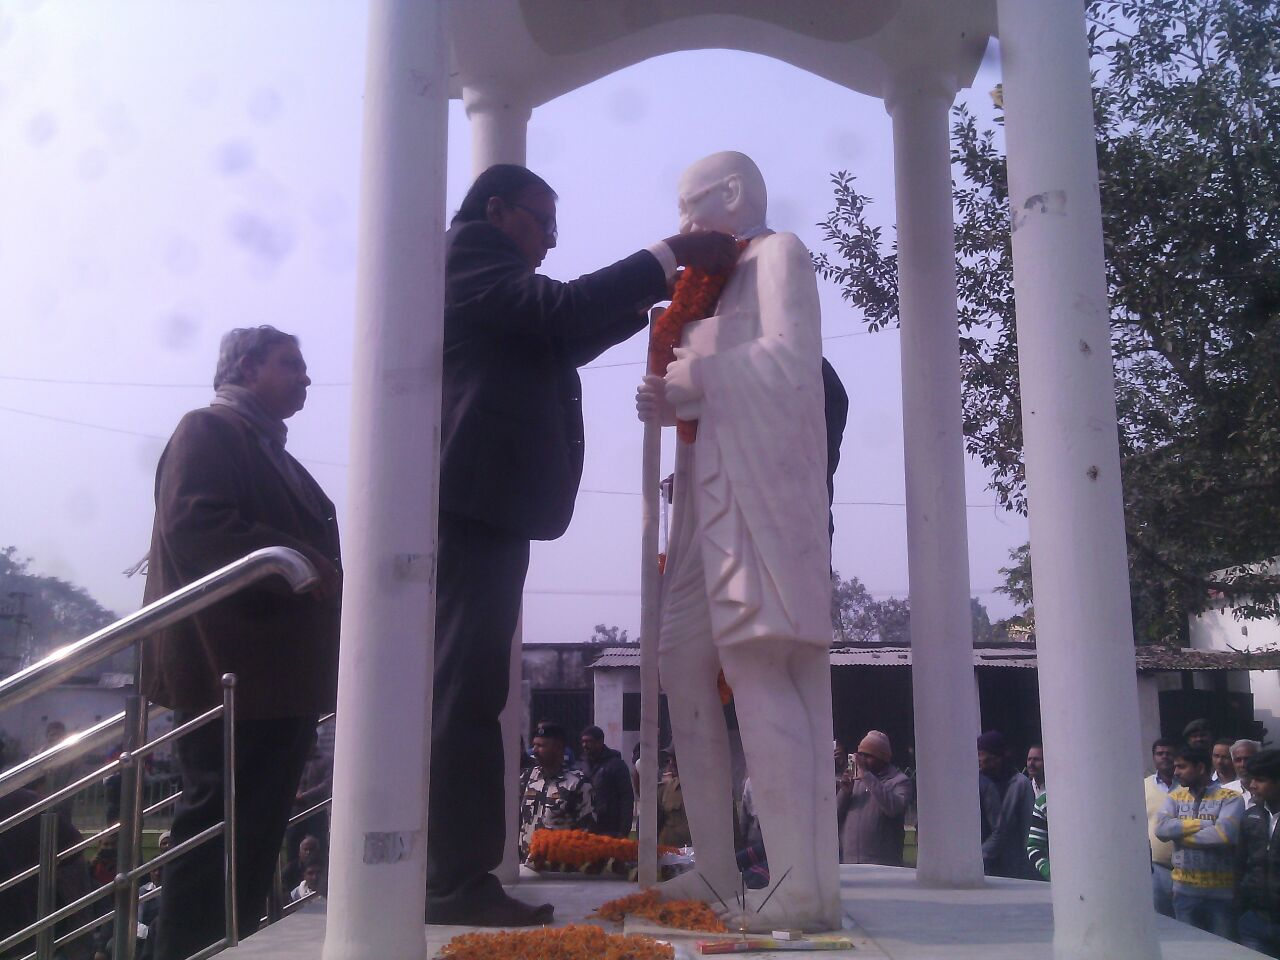 Samajsevi Dr.Bhupendra Madhepuri garlanding the Milky Marble statue of Mahatma Gandhi in the Collectorate Campus on the auspicious occasion of Bapu's Shahadat Diwas , 30th Jan 2017 at Madhepura .